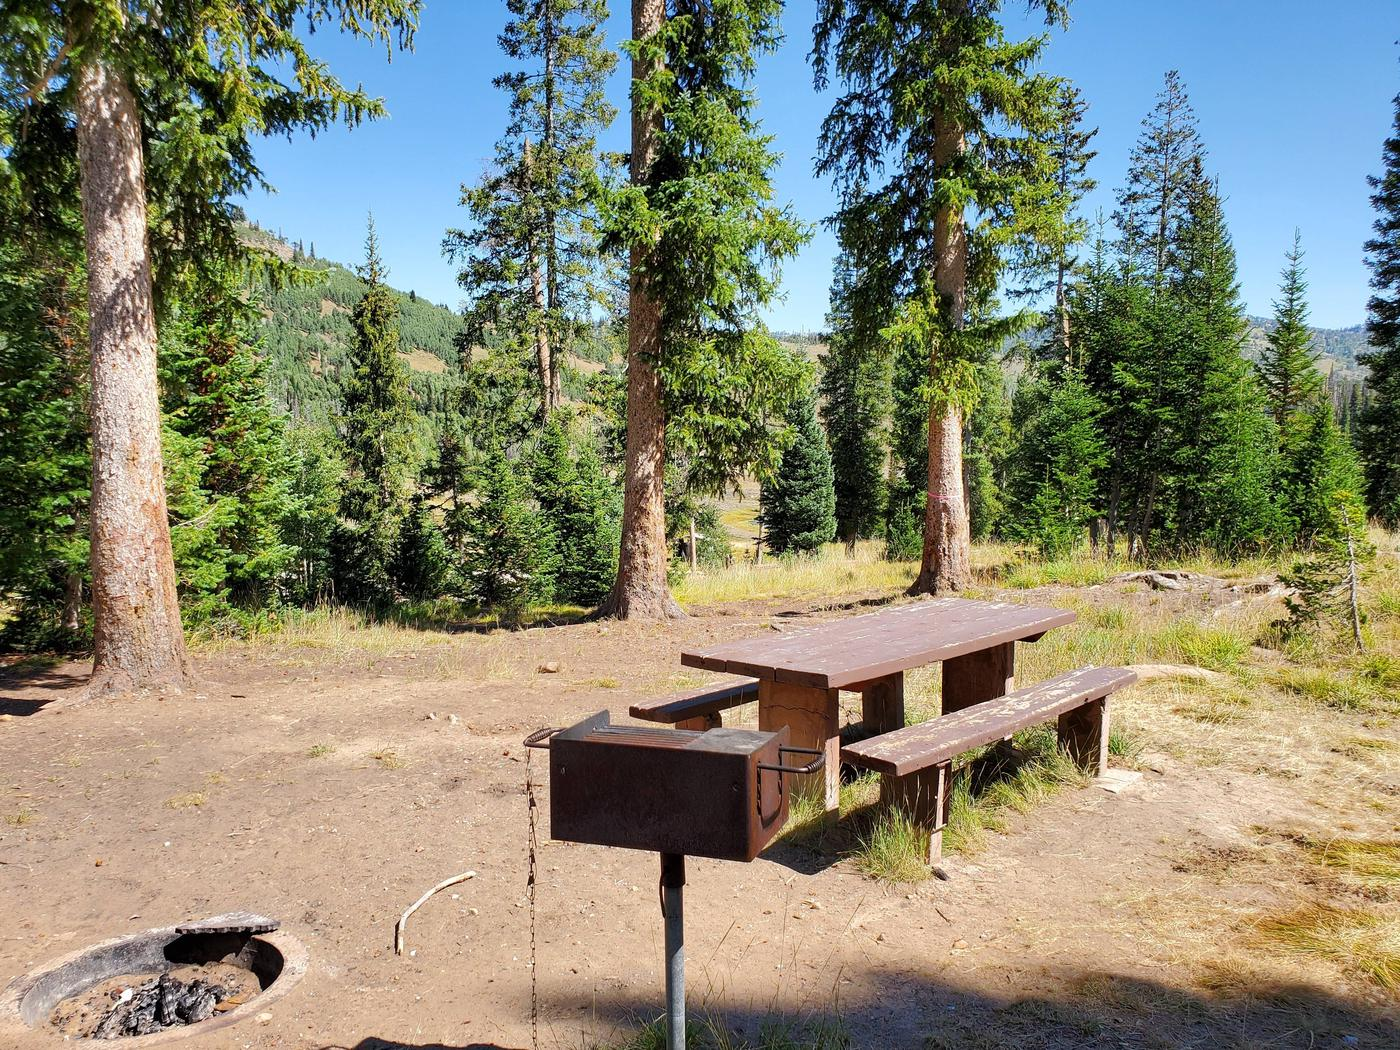 Flat Canyon Campground Site #11